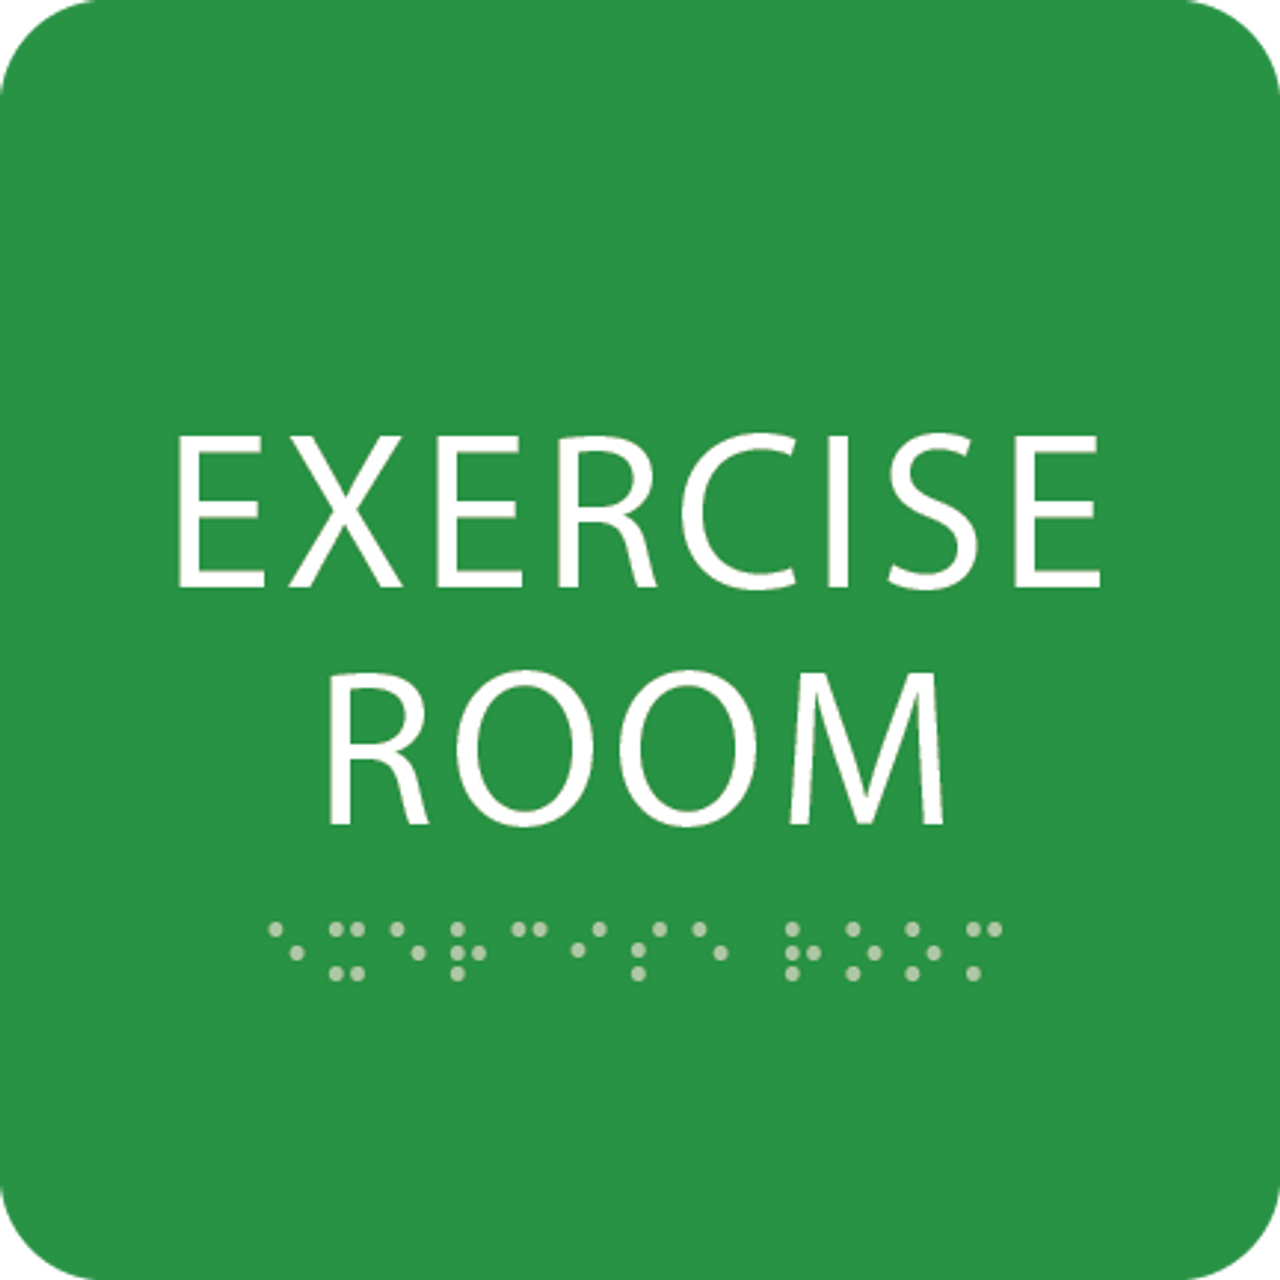 Green Exercise Room Tactile Sign